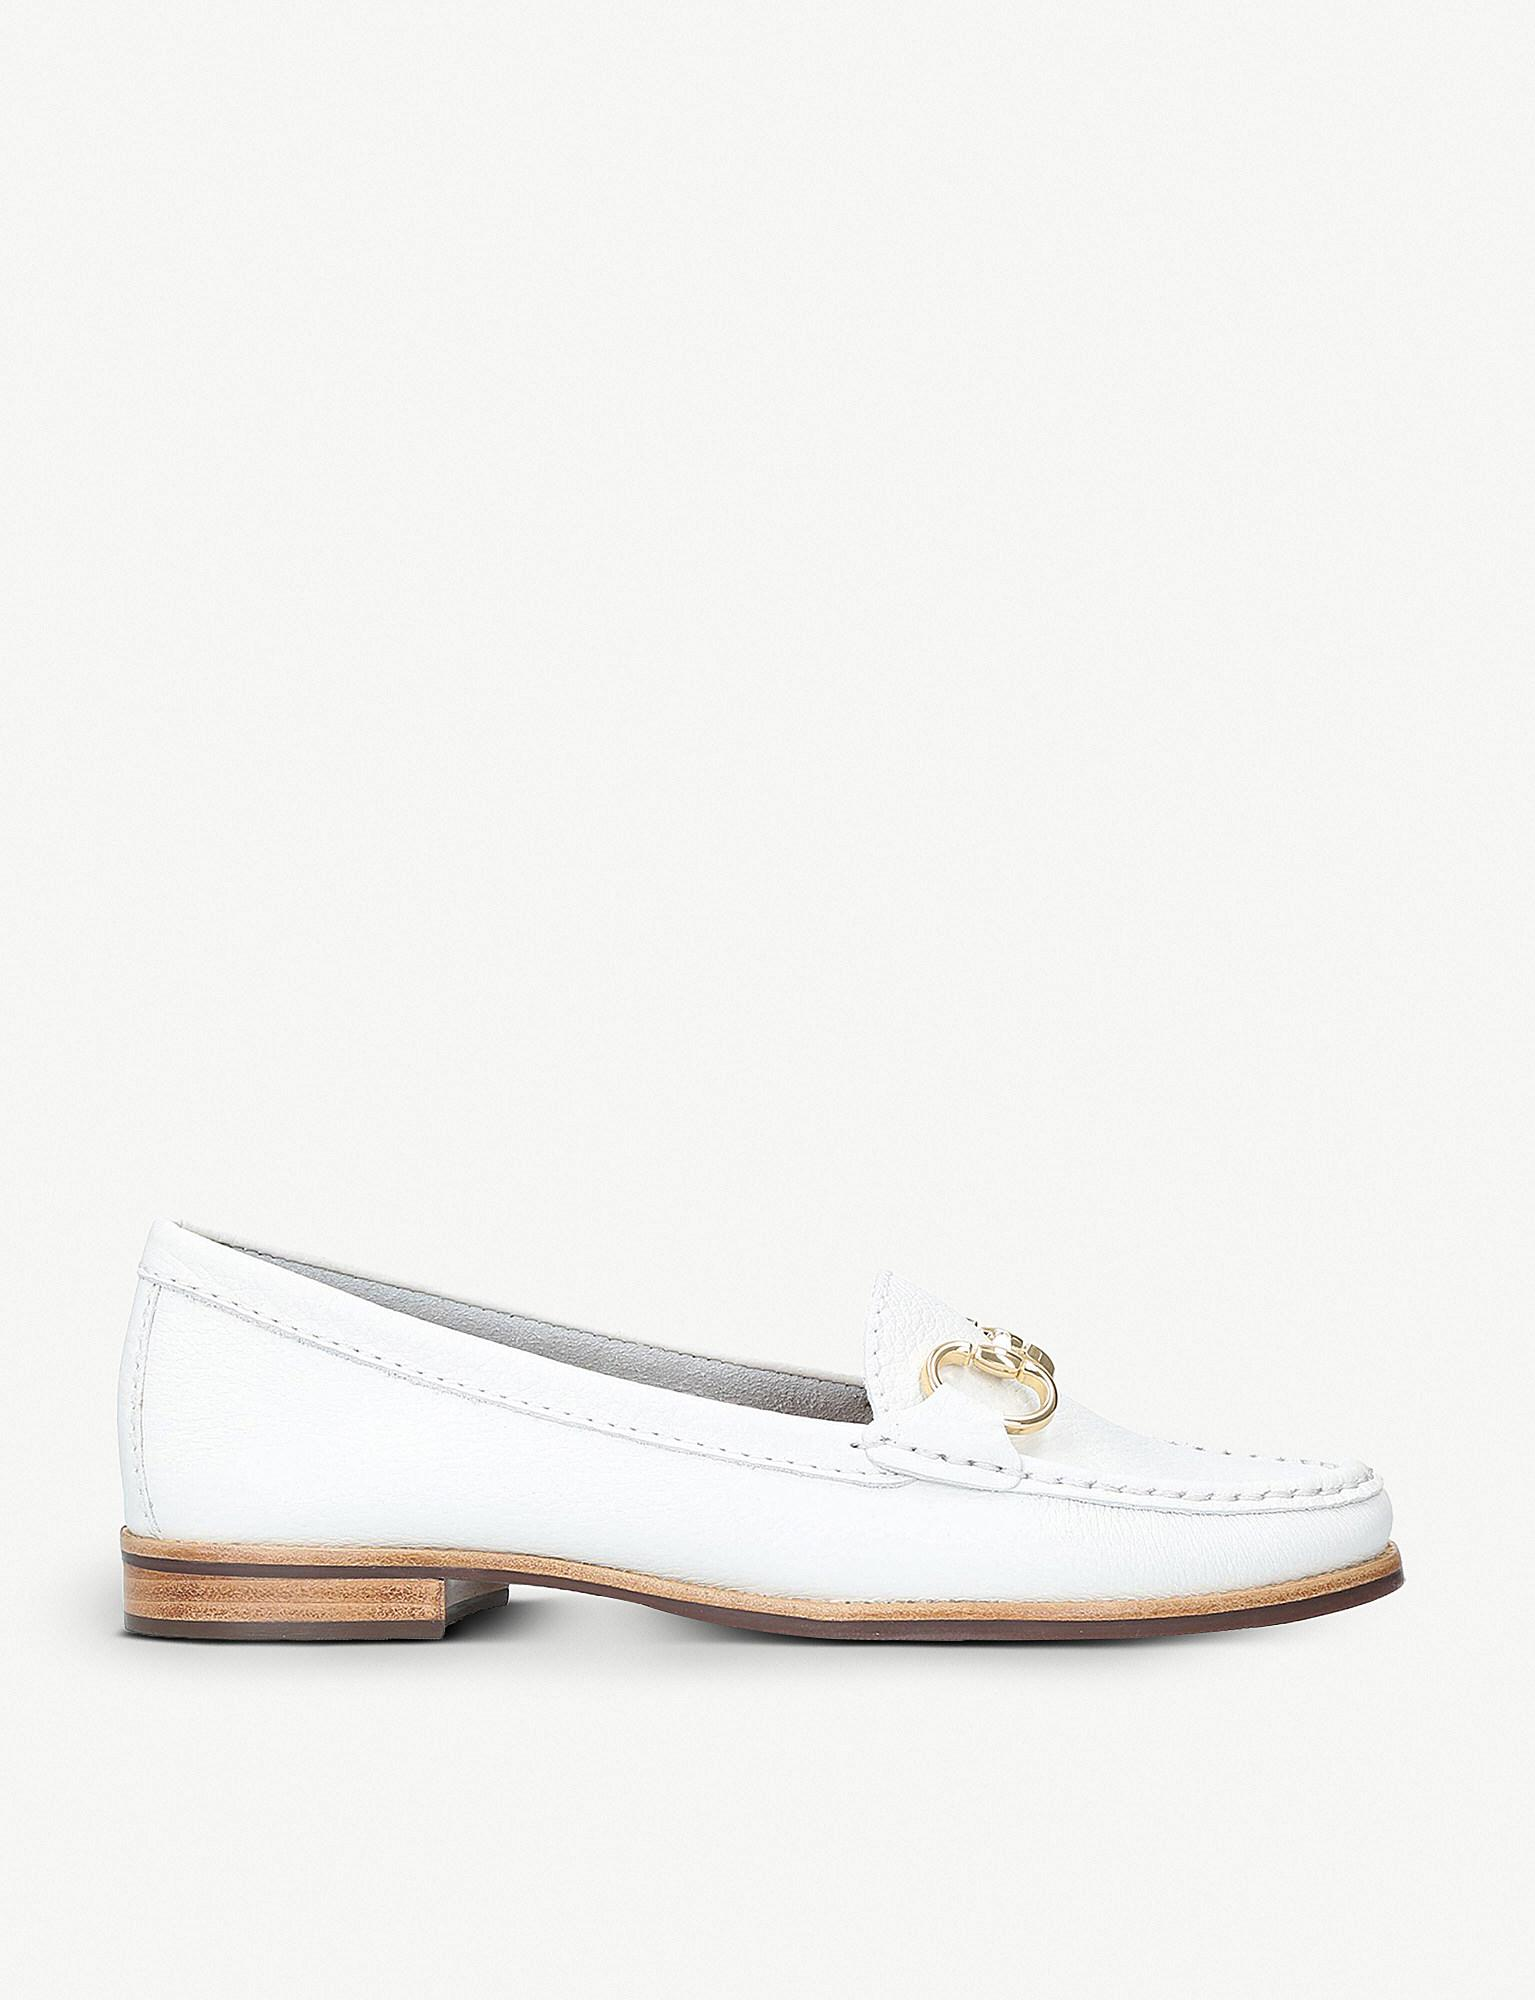 White 'Click' flat loafers comfortable sale online cheap really authentic for sale sale best wholesale free shipping low shipping X27DivN8B